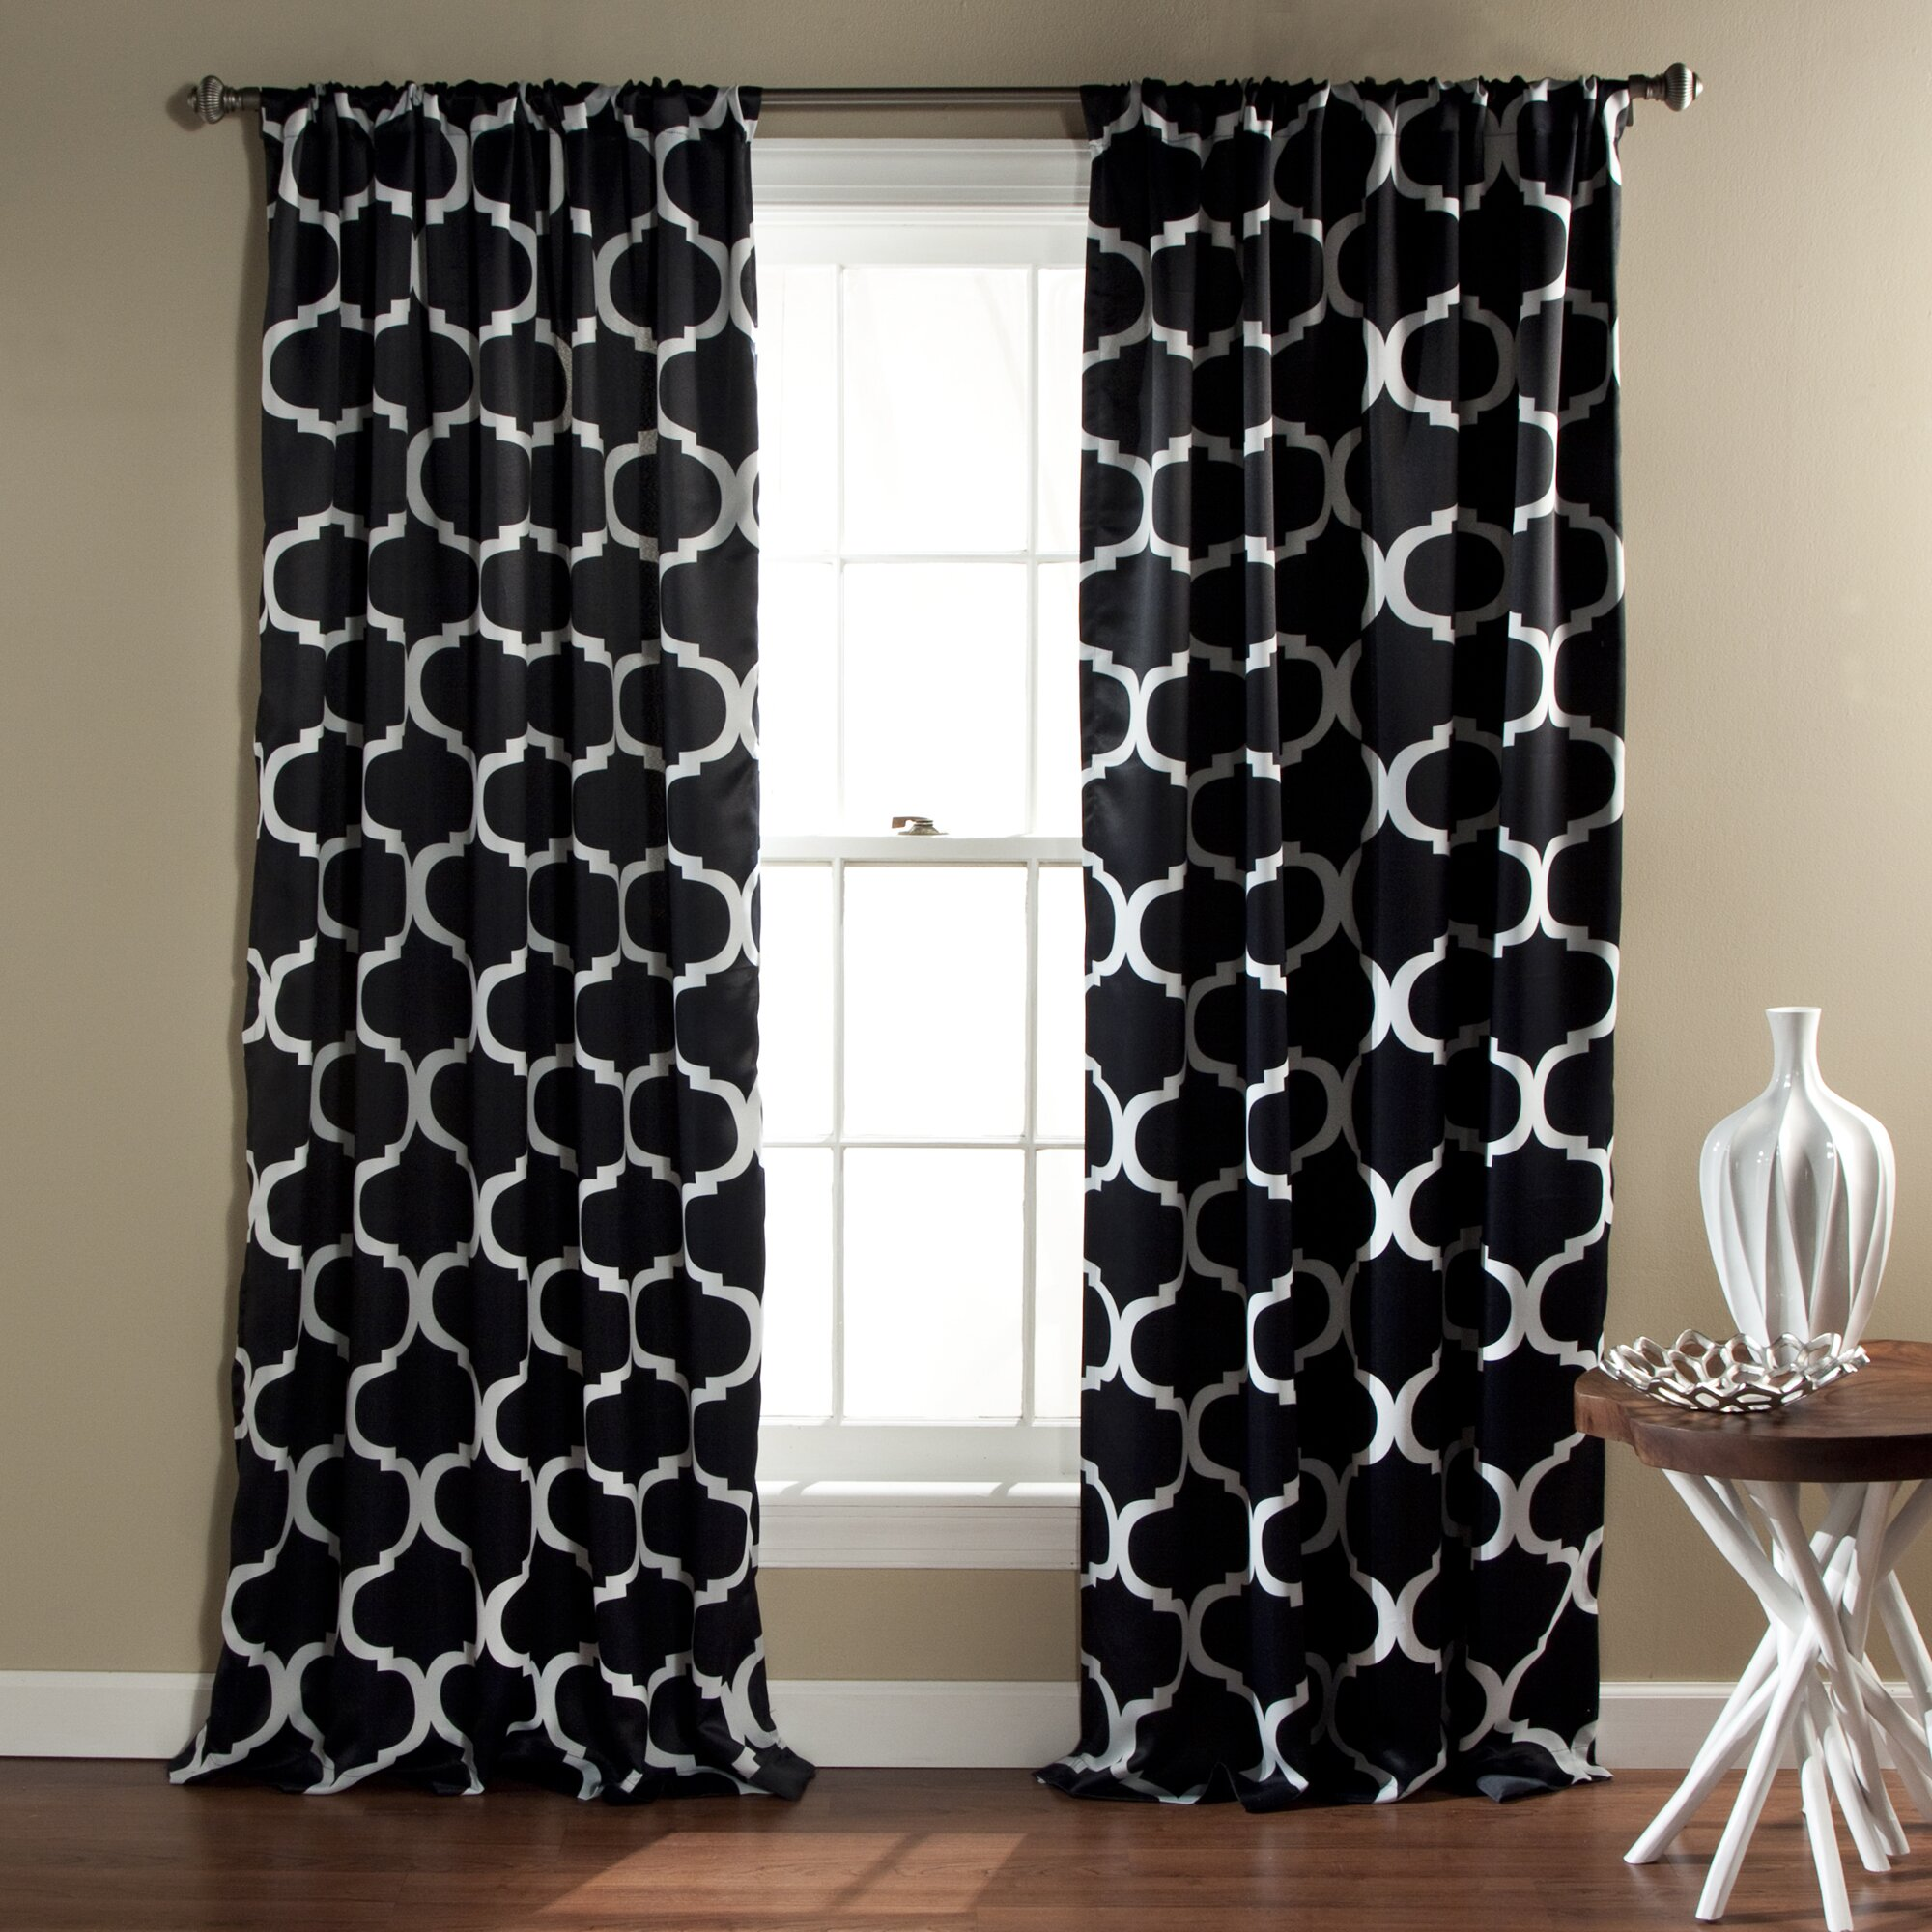 brayden studio mukai darkening curtain panel reviews wayfair